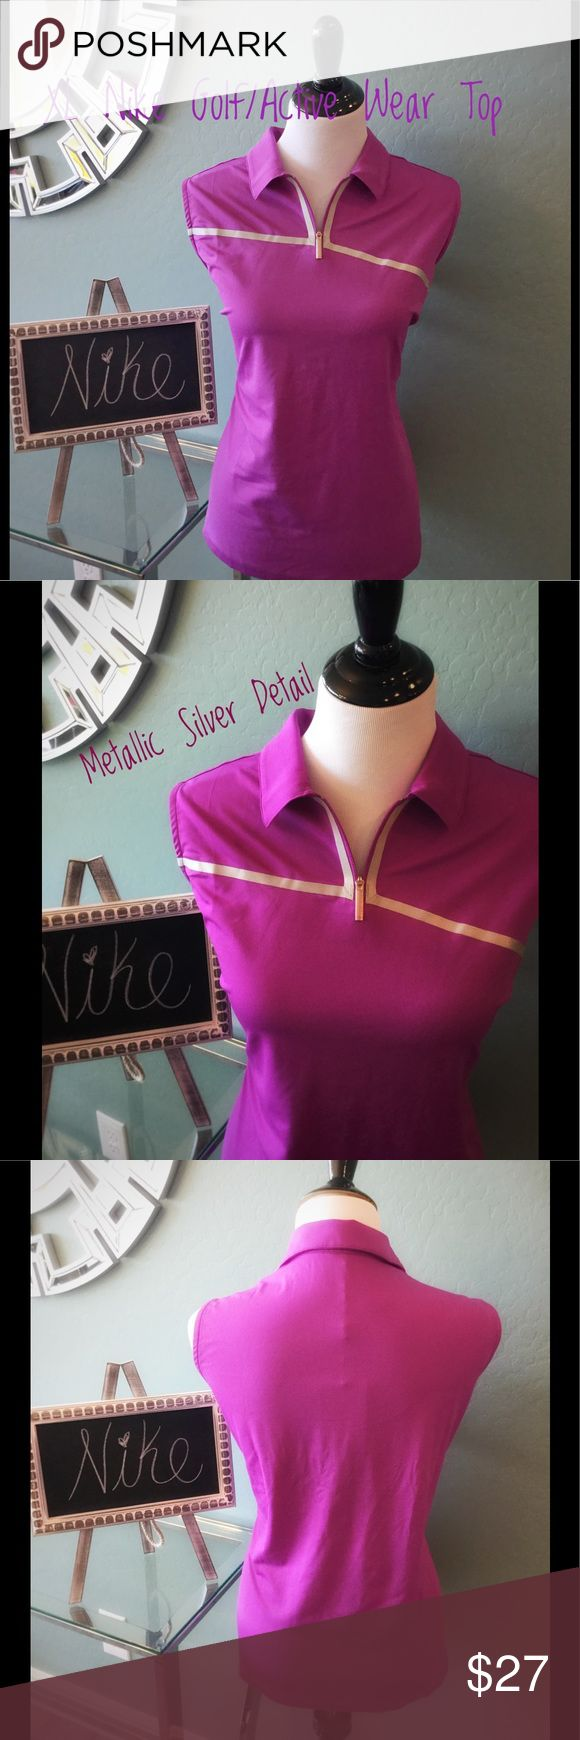 Nike Golf/ Active Wear Sleeveless Top Nike Golf/ active wear top in a size XL true to size. Brand new with tags. Pretty purplish magenta color with silver metallic detail in the front. Perfect for a day on the golf course or for any outdoor activity. Nike Tops